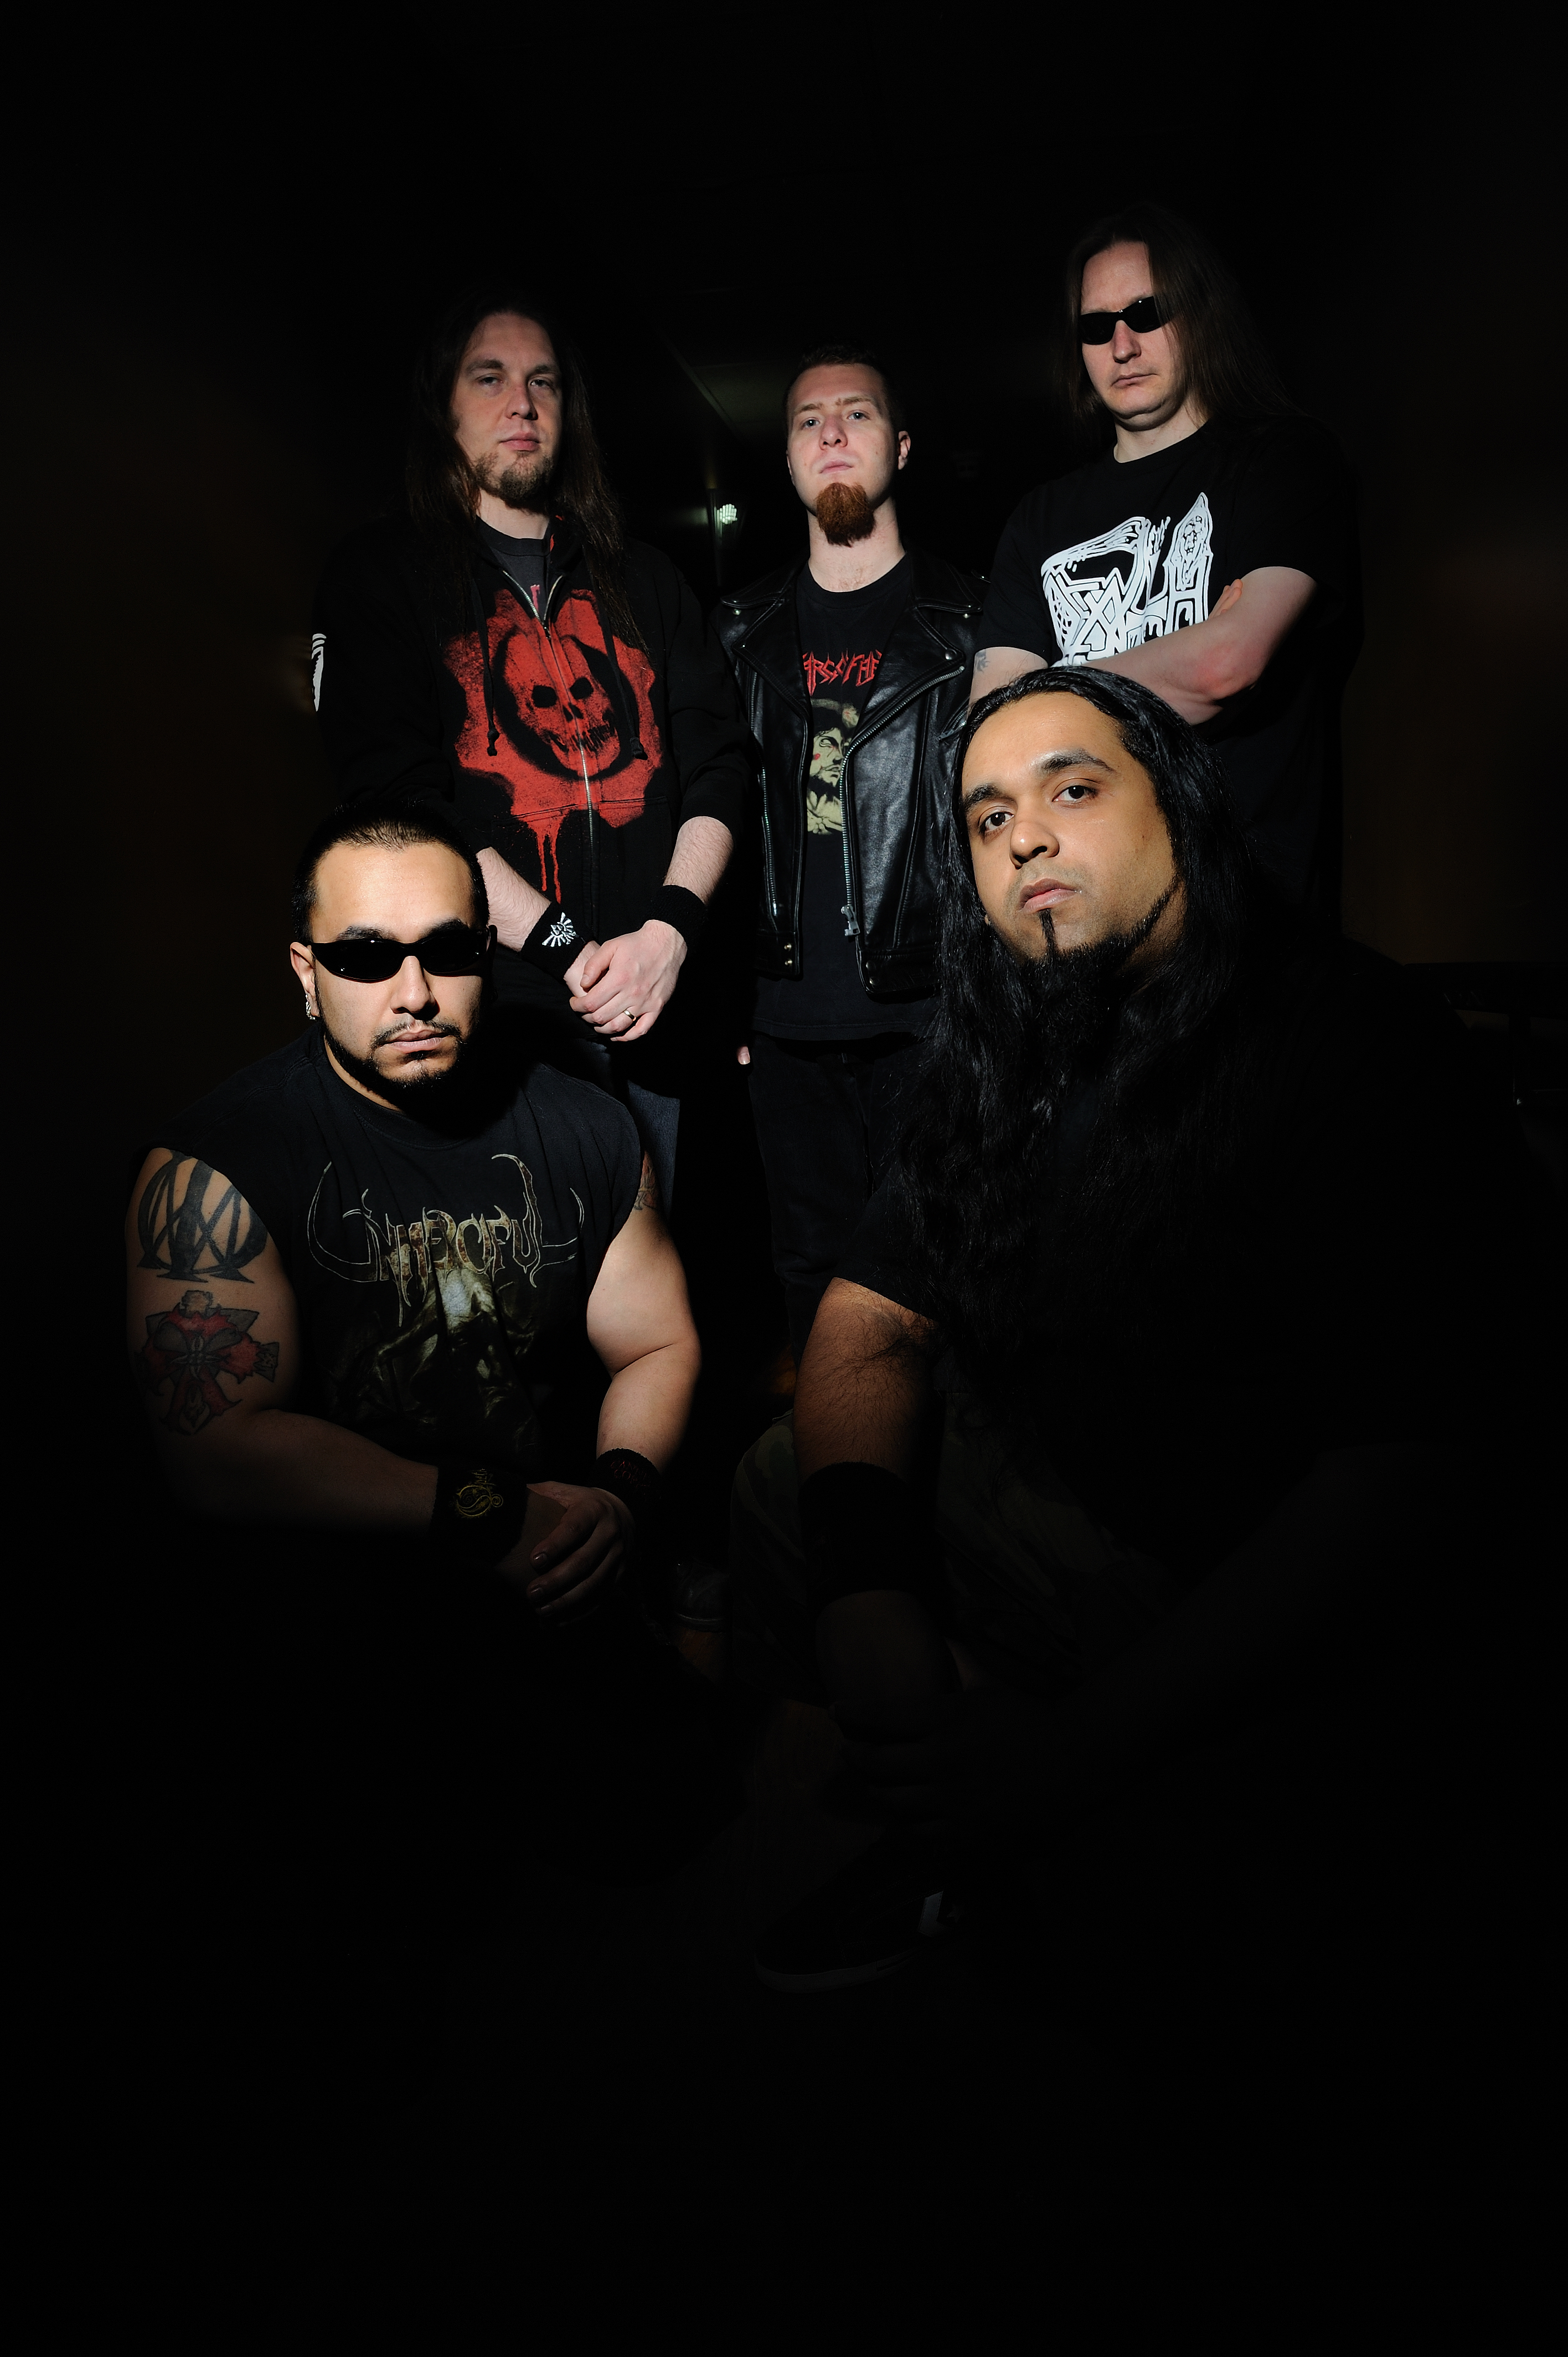 NEPHELIUM Nominated For Best Metal at Toronto Independent